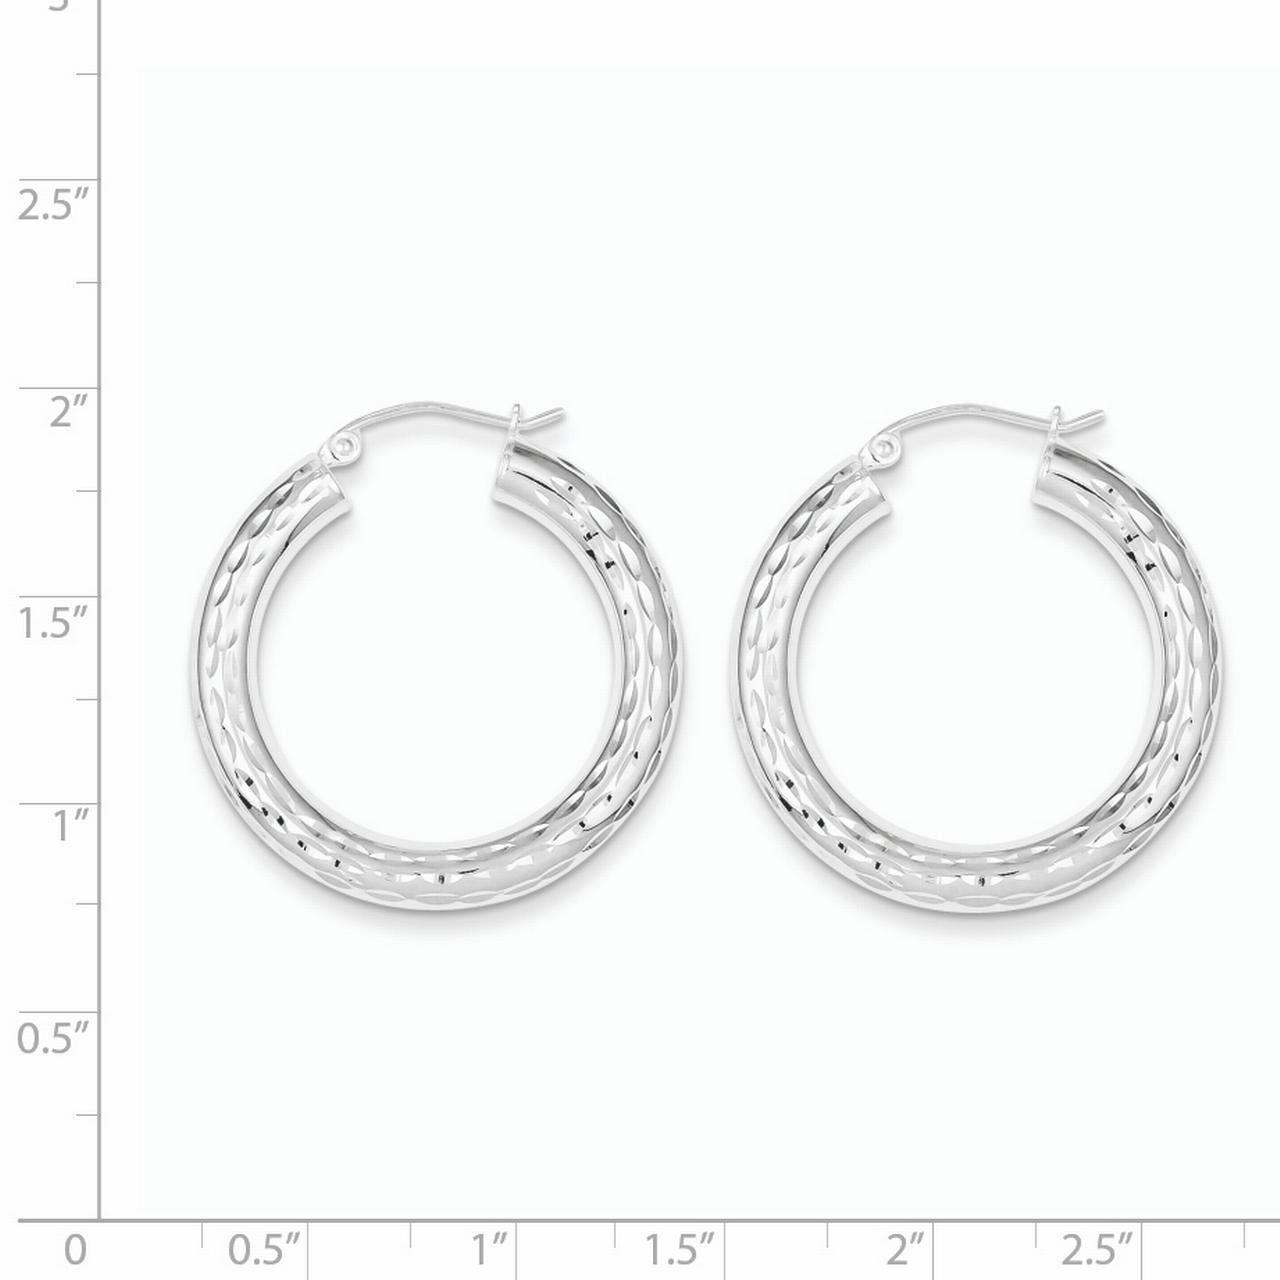 925 Sterling Silver 4mm Hoop Earrings Ear Hoops Set Round Classic Fine Jewelry Gifts For Women For Her - image 1 of 2